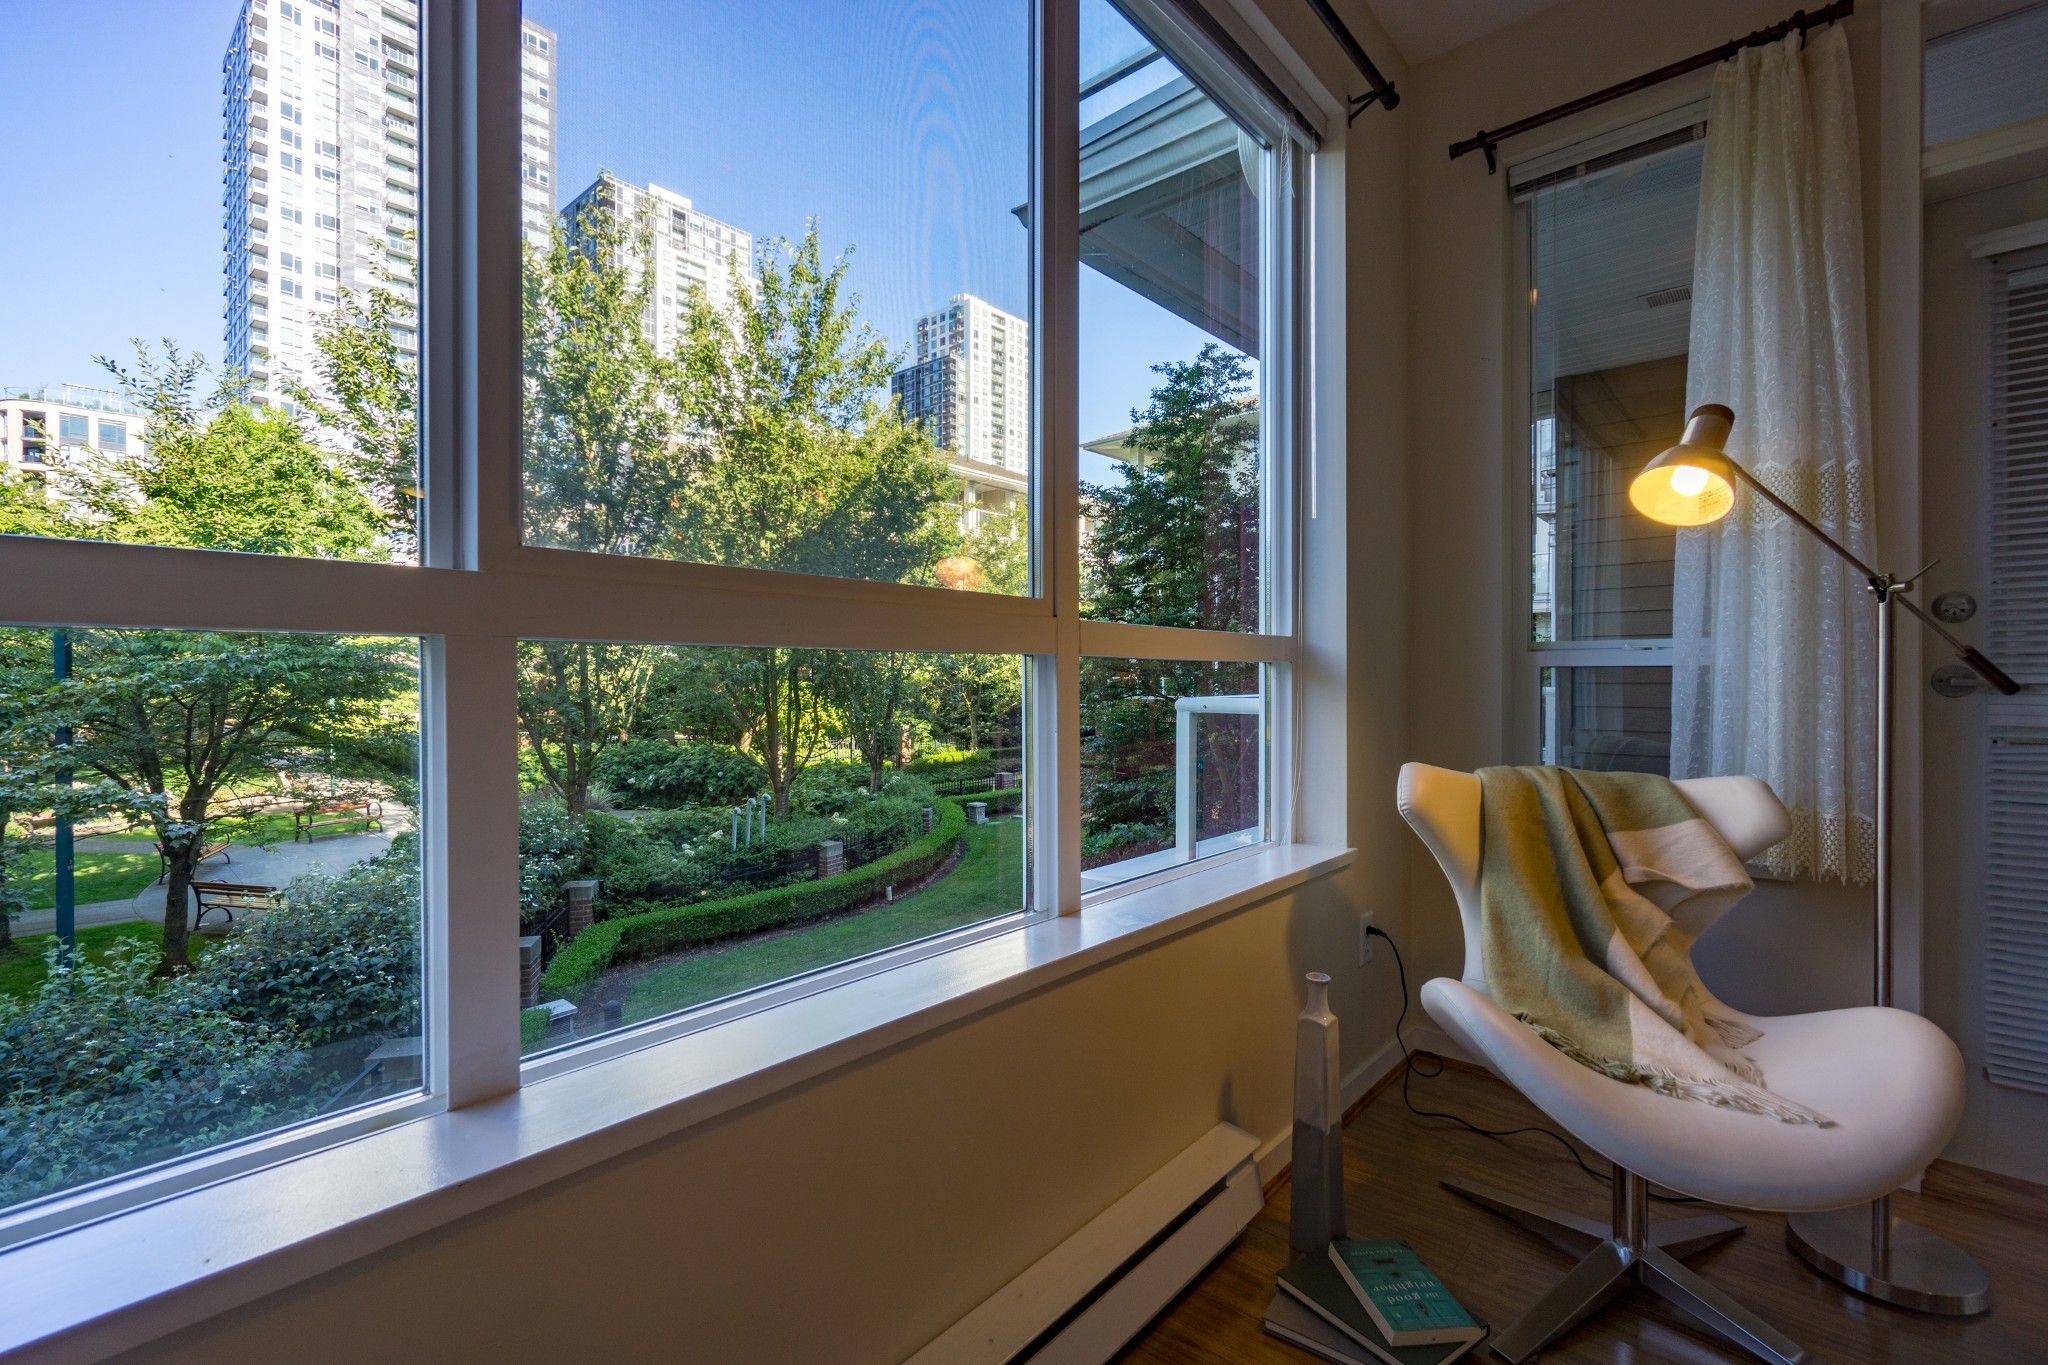 Photo 14: Photos: 208 3551 FOSTER Avenue in Vancouver: Collingwood VE Condo for sale (Vancouver East)  : MLS®# R2291555